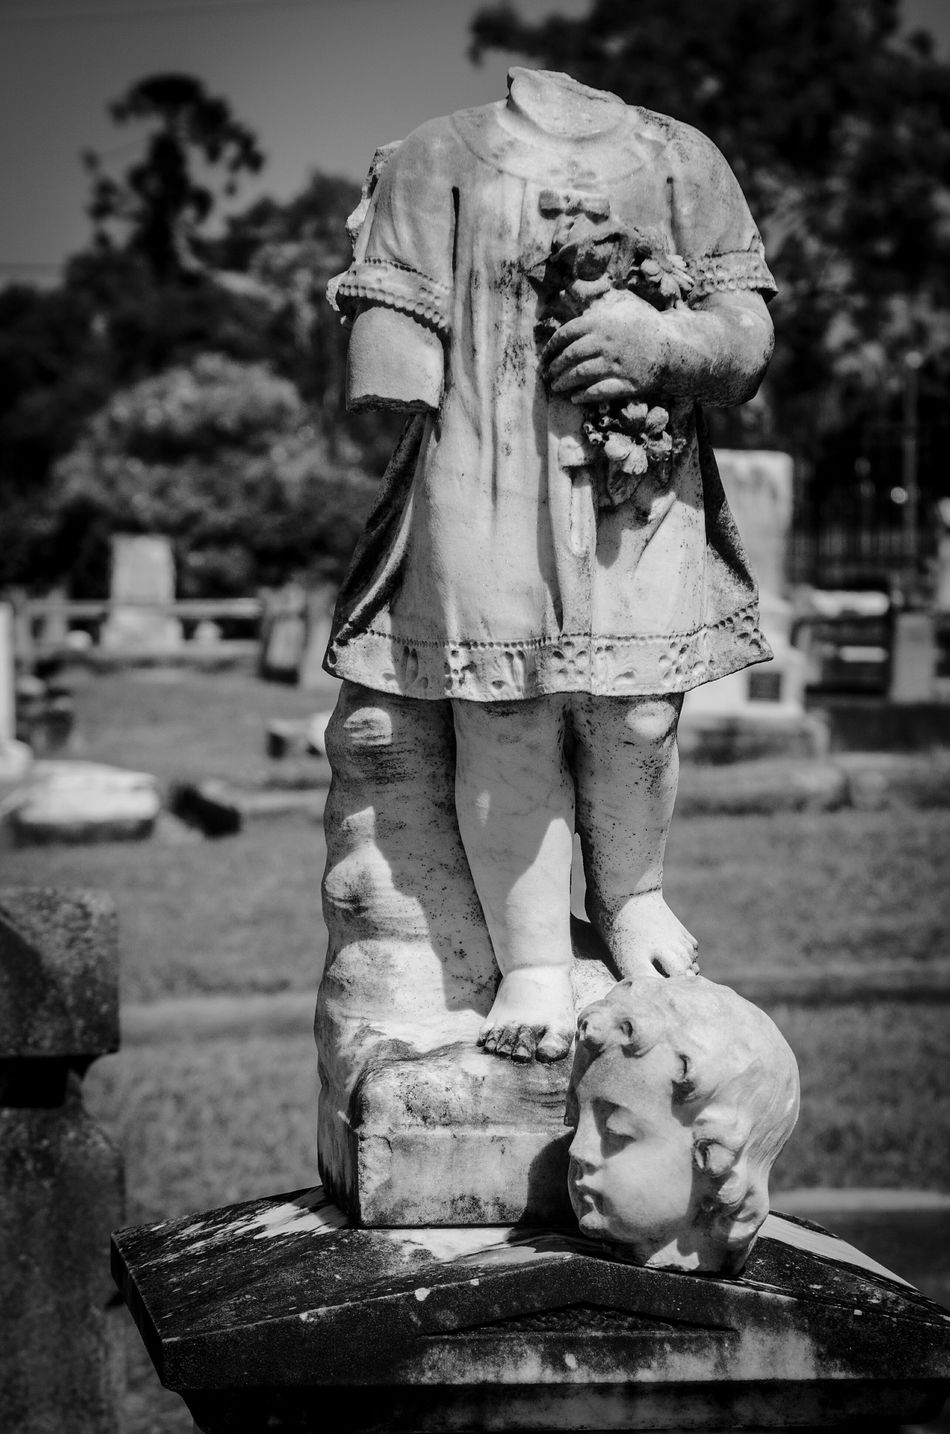 Statue Sculpture Nikon D5100  Cemetery Photography Graveyard Beauty Tombstone Peaceful Black & White Cherub Statue Sadness